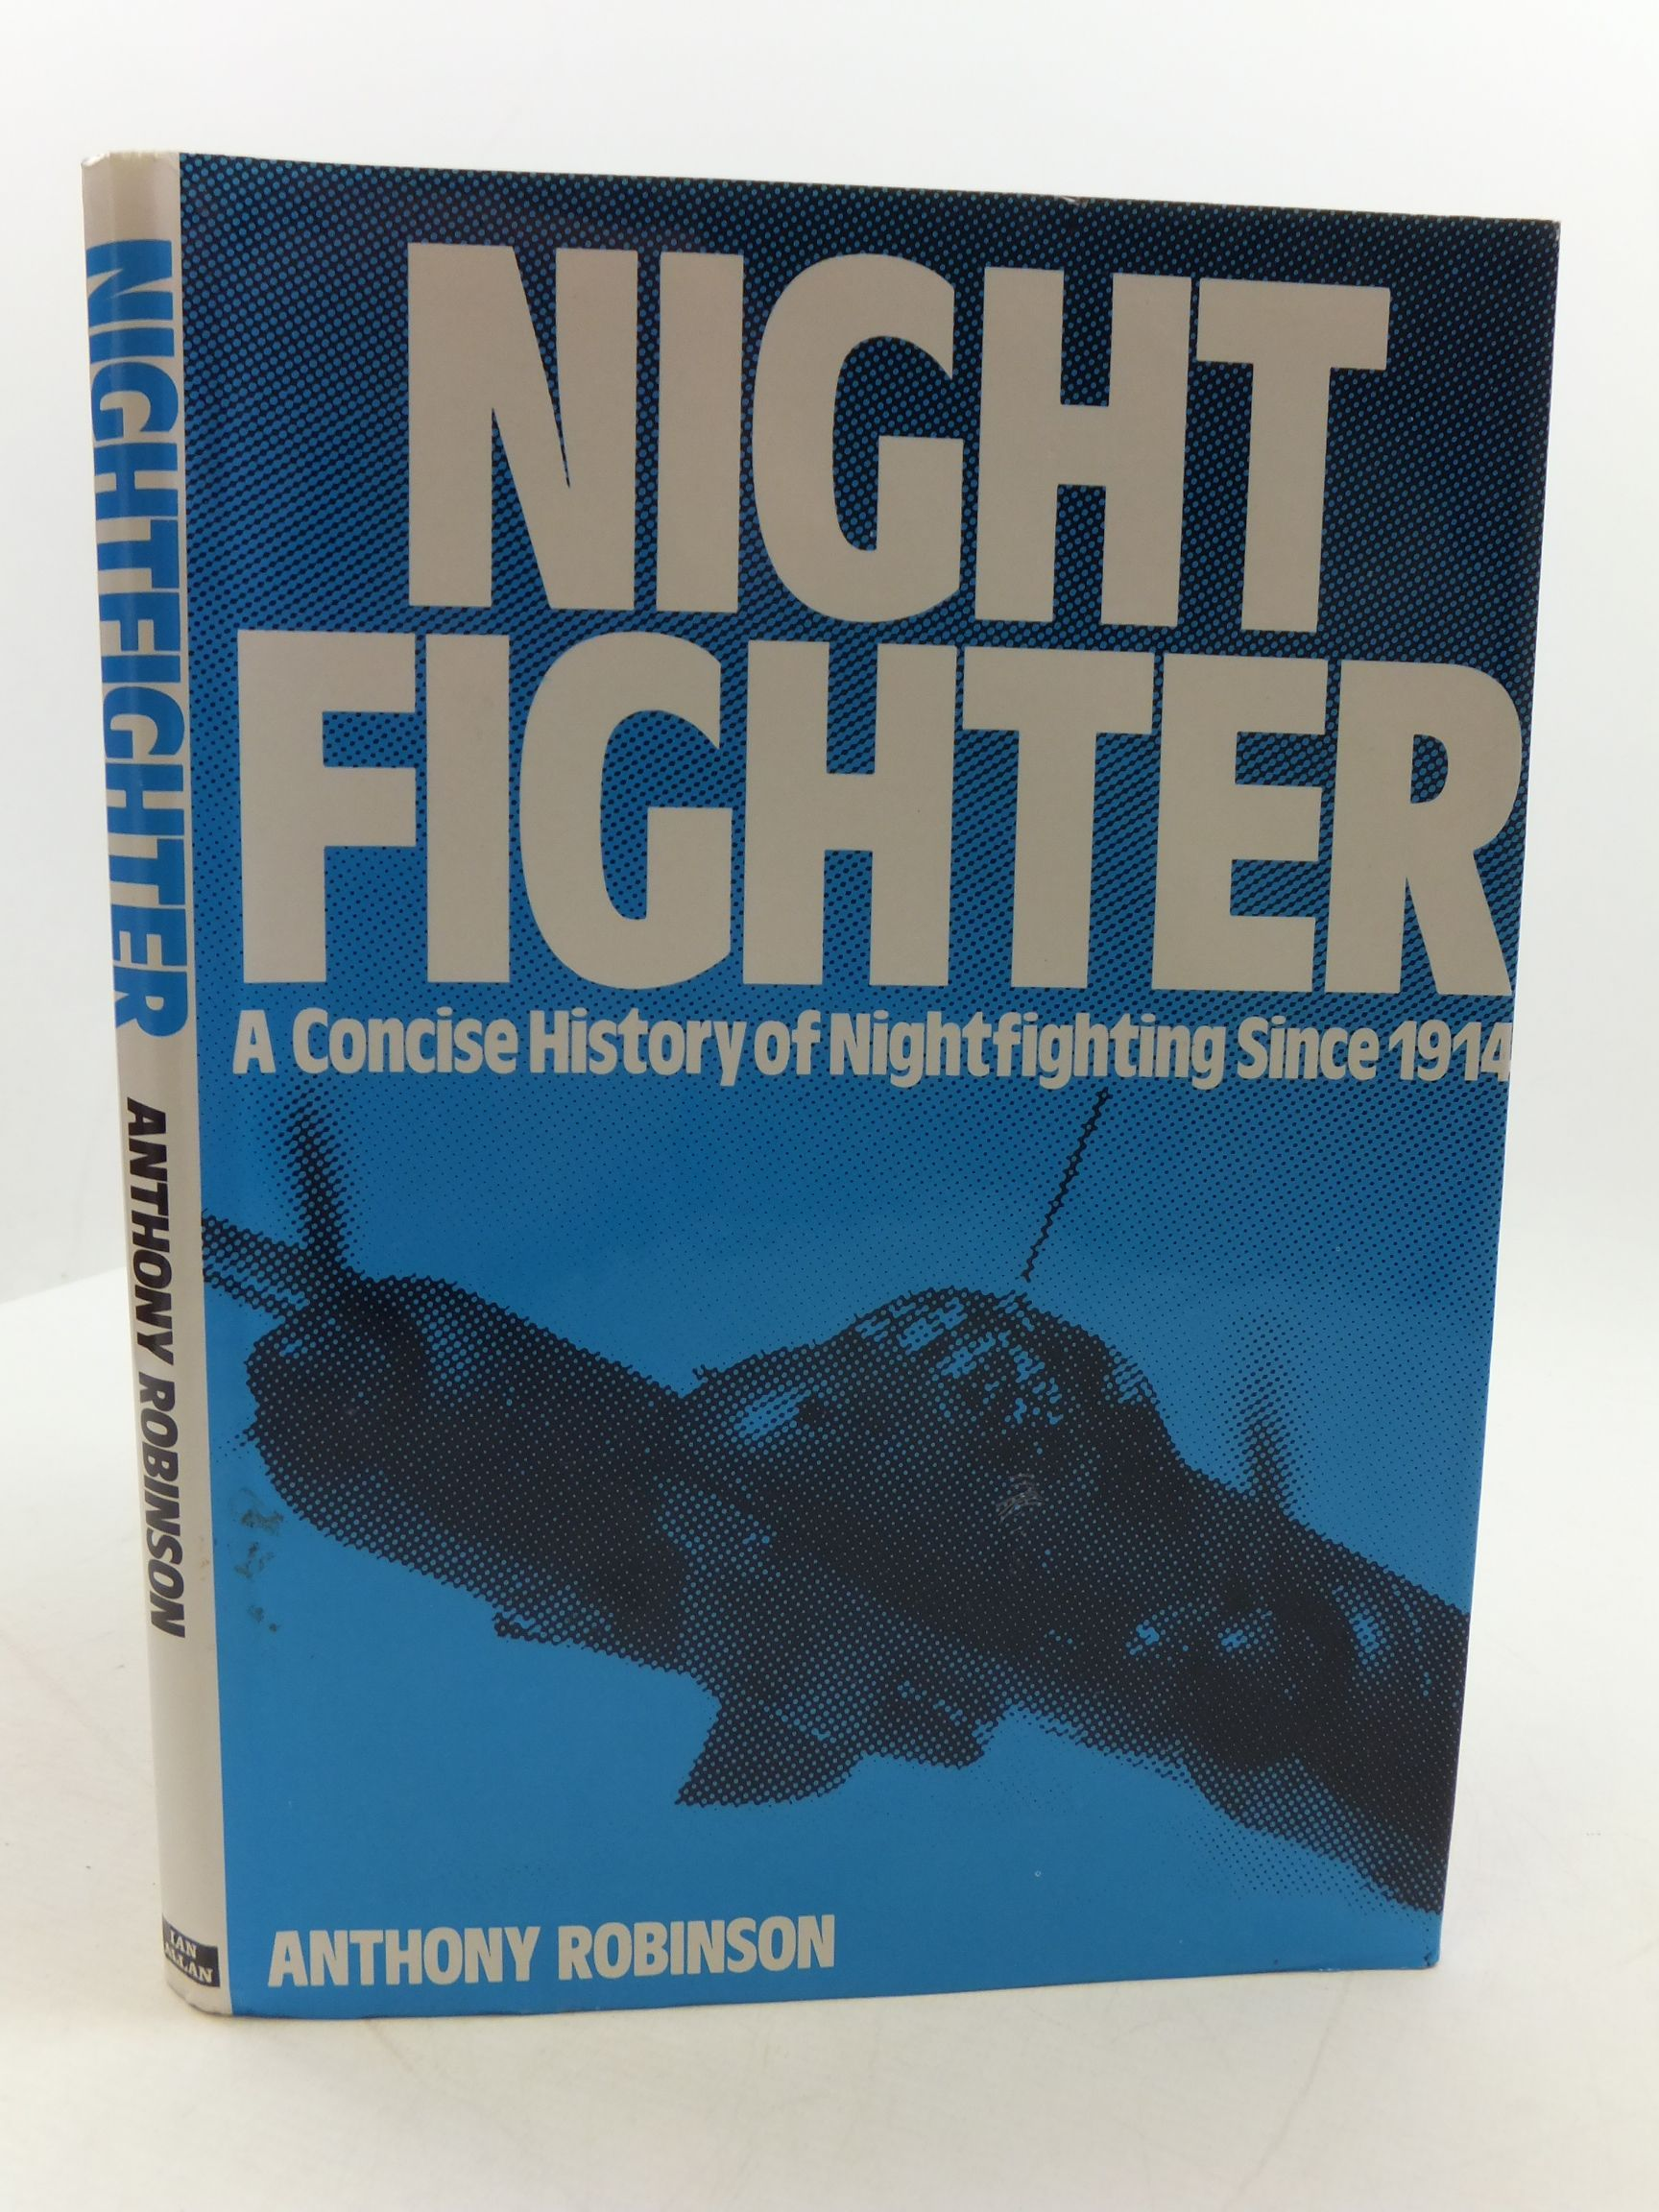 Photo of NIGHTFIGHTER A CONCISE HISTORY OF NIGHTFIGHTING SINCE 1914 written by Robinson, Anthony published by Ian Allan Ltd. (STOCK CODE: 1807266)  for sale by Stella & Rose's Books